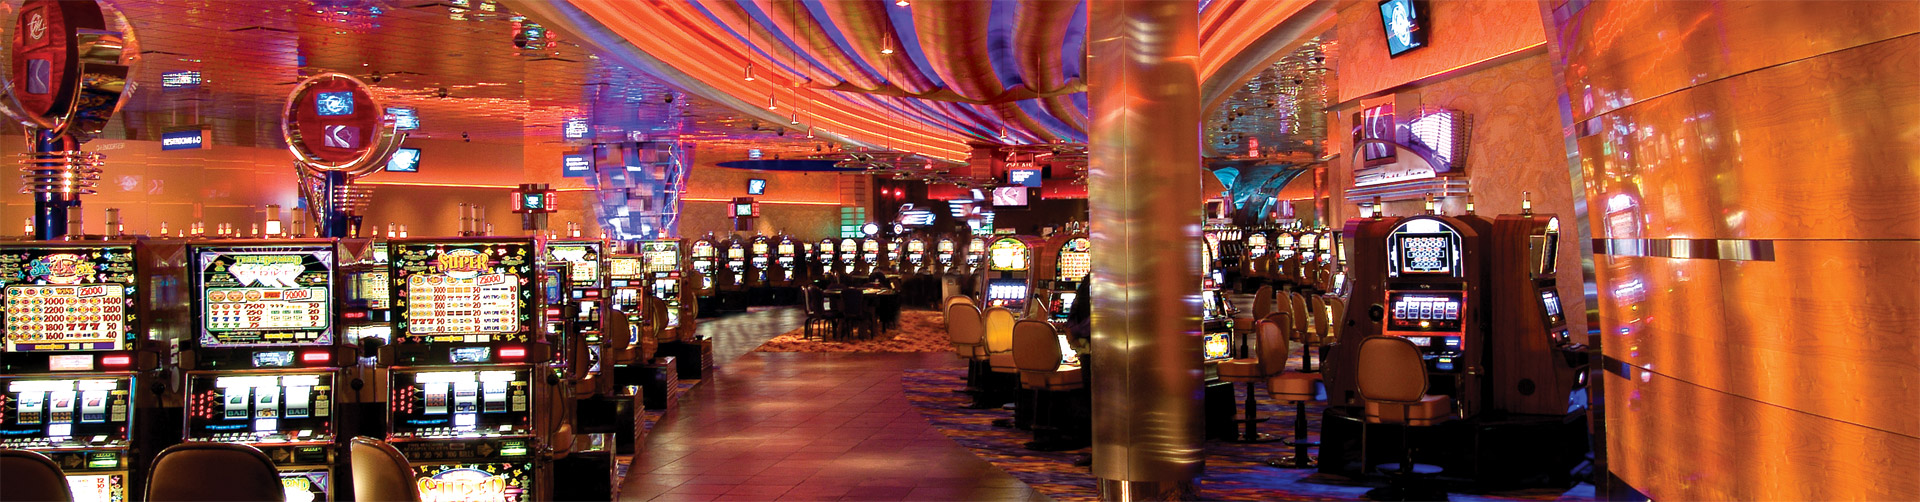 Motor city casino poker room review casino gambling information